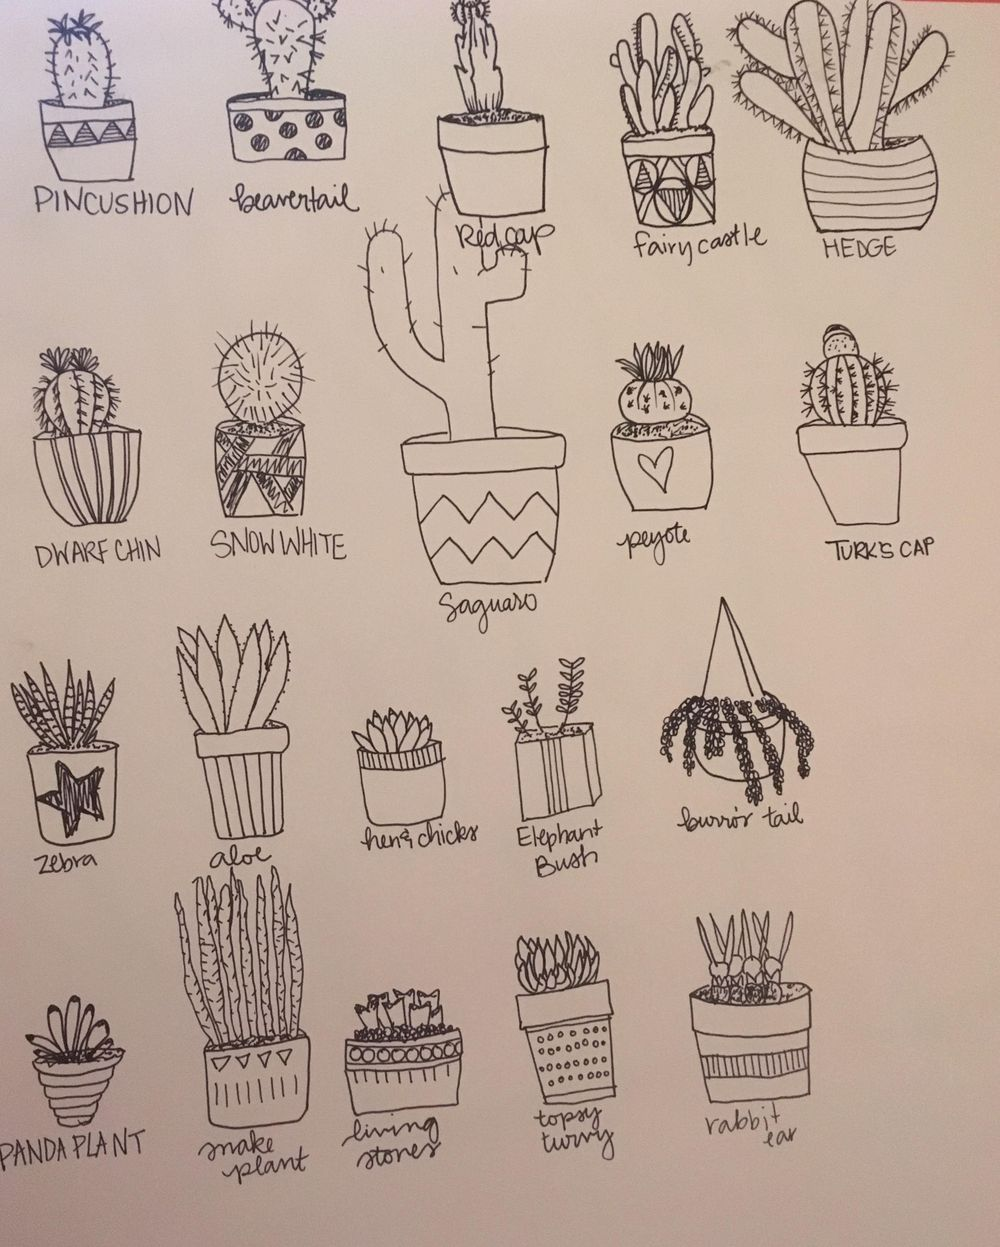 Cactus practice! (Haha, that rhymes.) - image 1 - student project